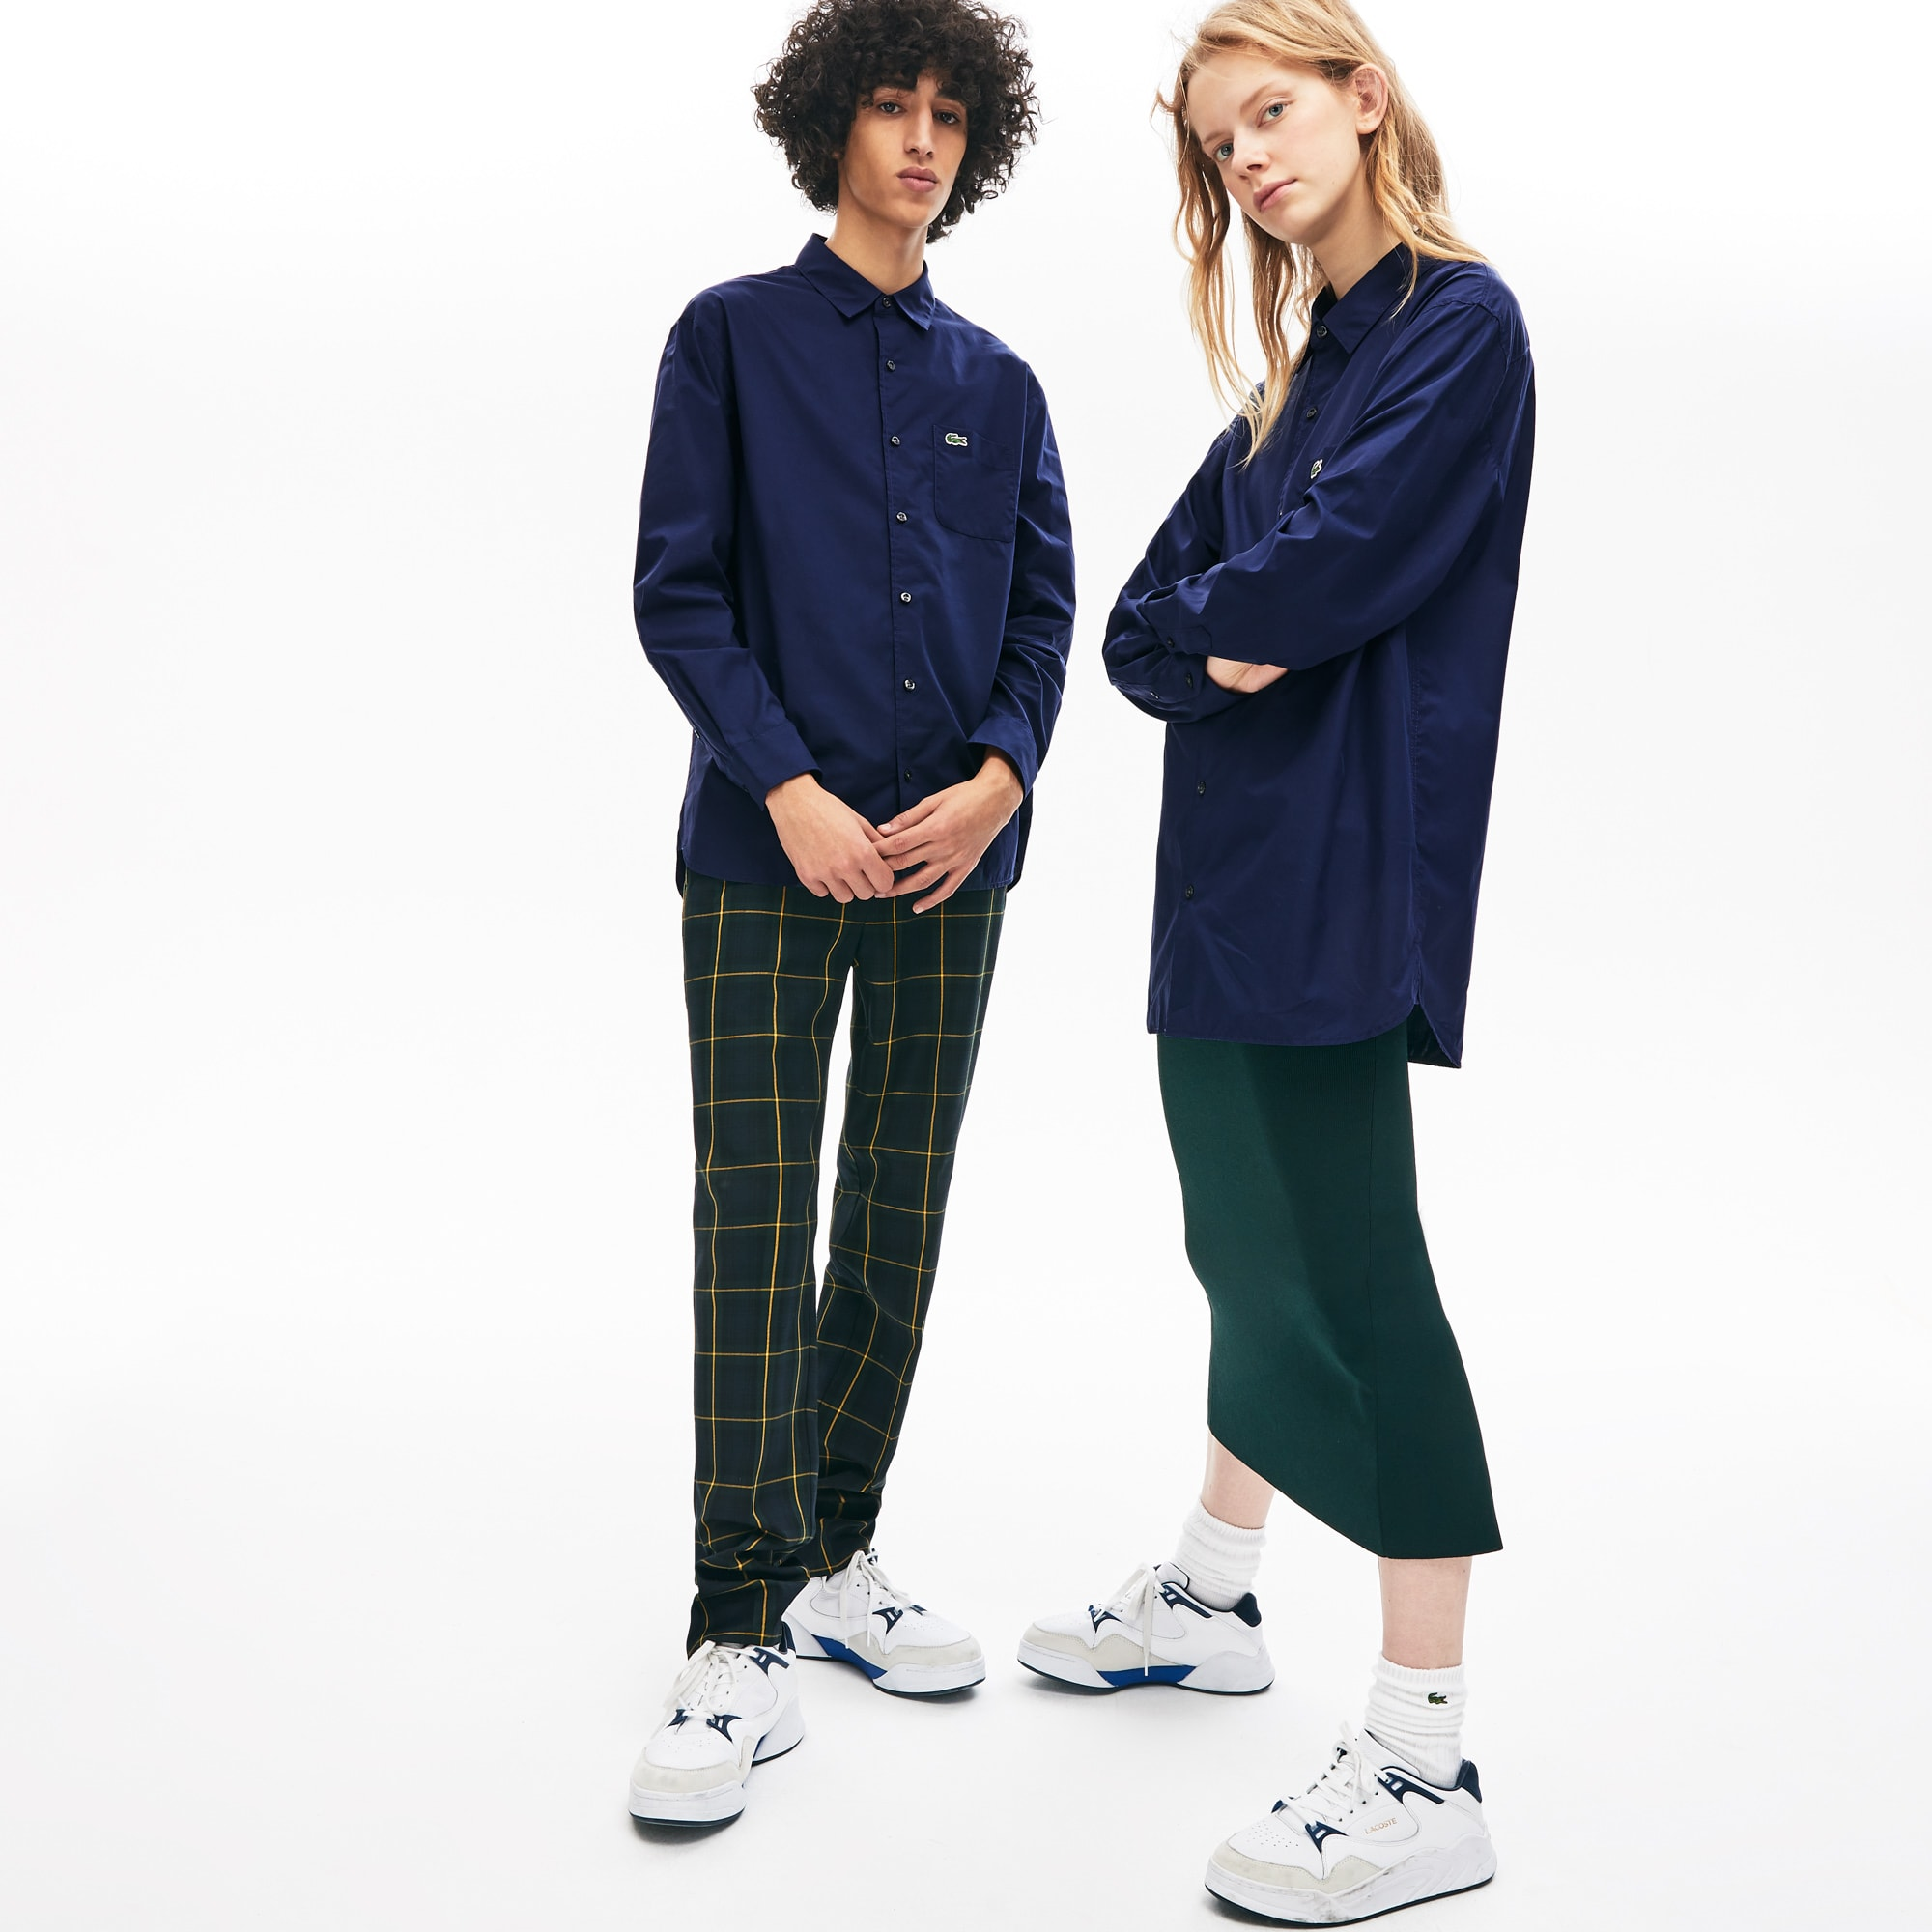 Unisex Lacoste LIVE Boxy Fit Cotton Poplin Shirt